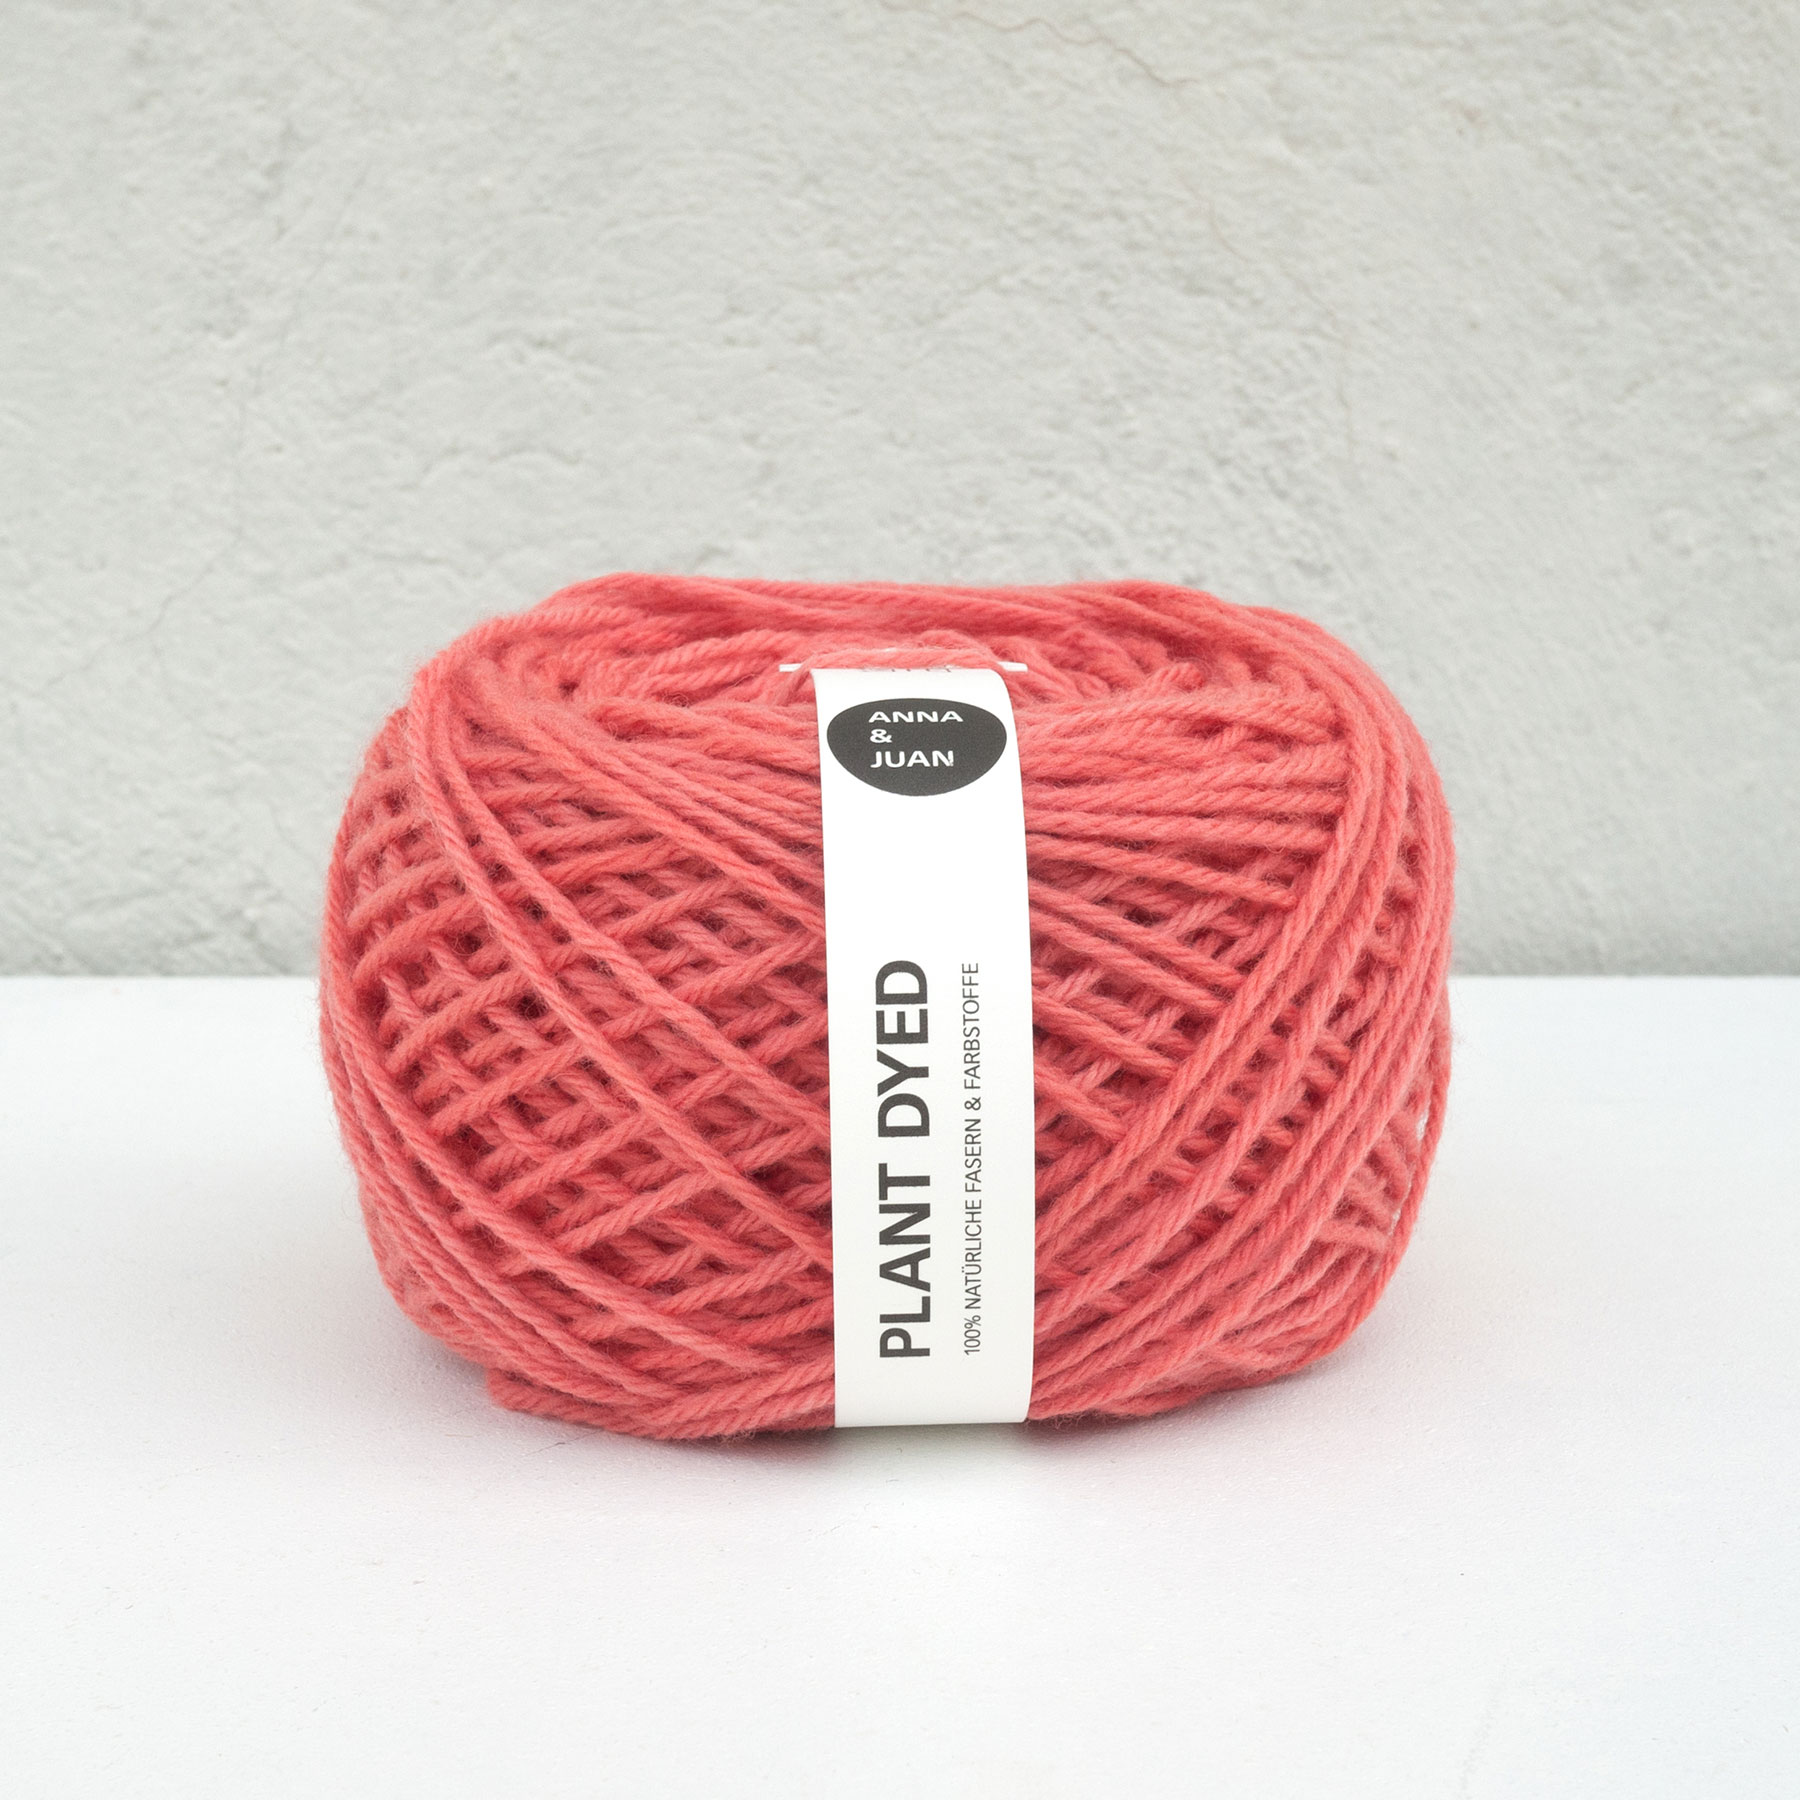 "Anna & Juan Wool ""Plant Dyed"" – Merino Twisted – Worsted Weight – Madder/Cochineal"